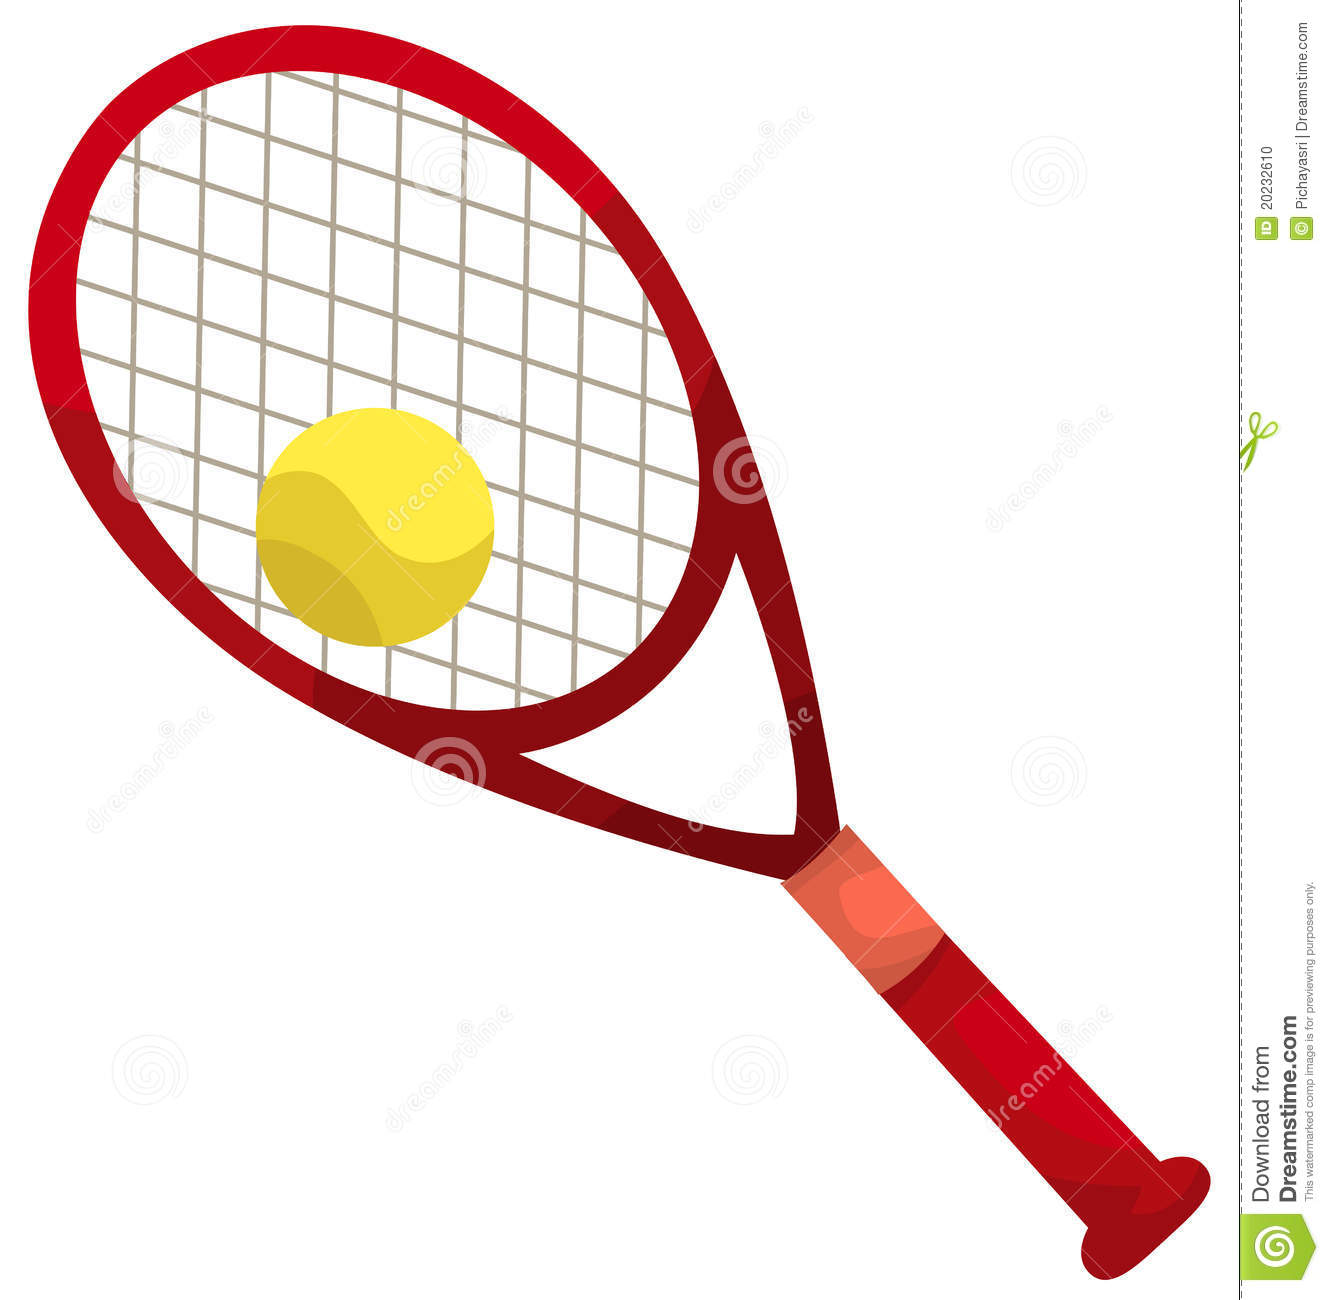 Tennis racket and ball clipart free download best tennis - Dessin raquette ...